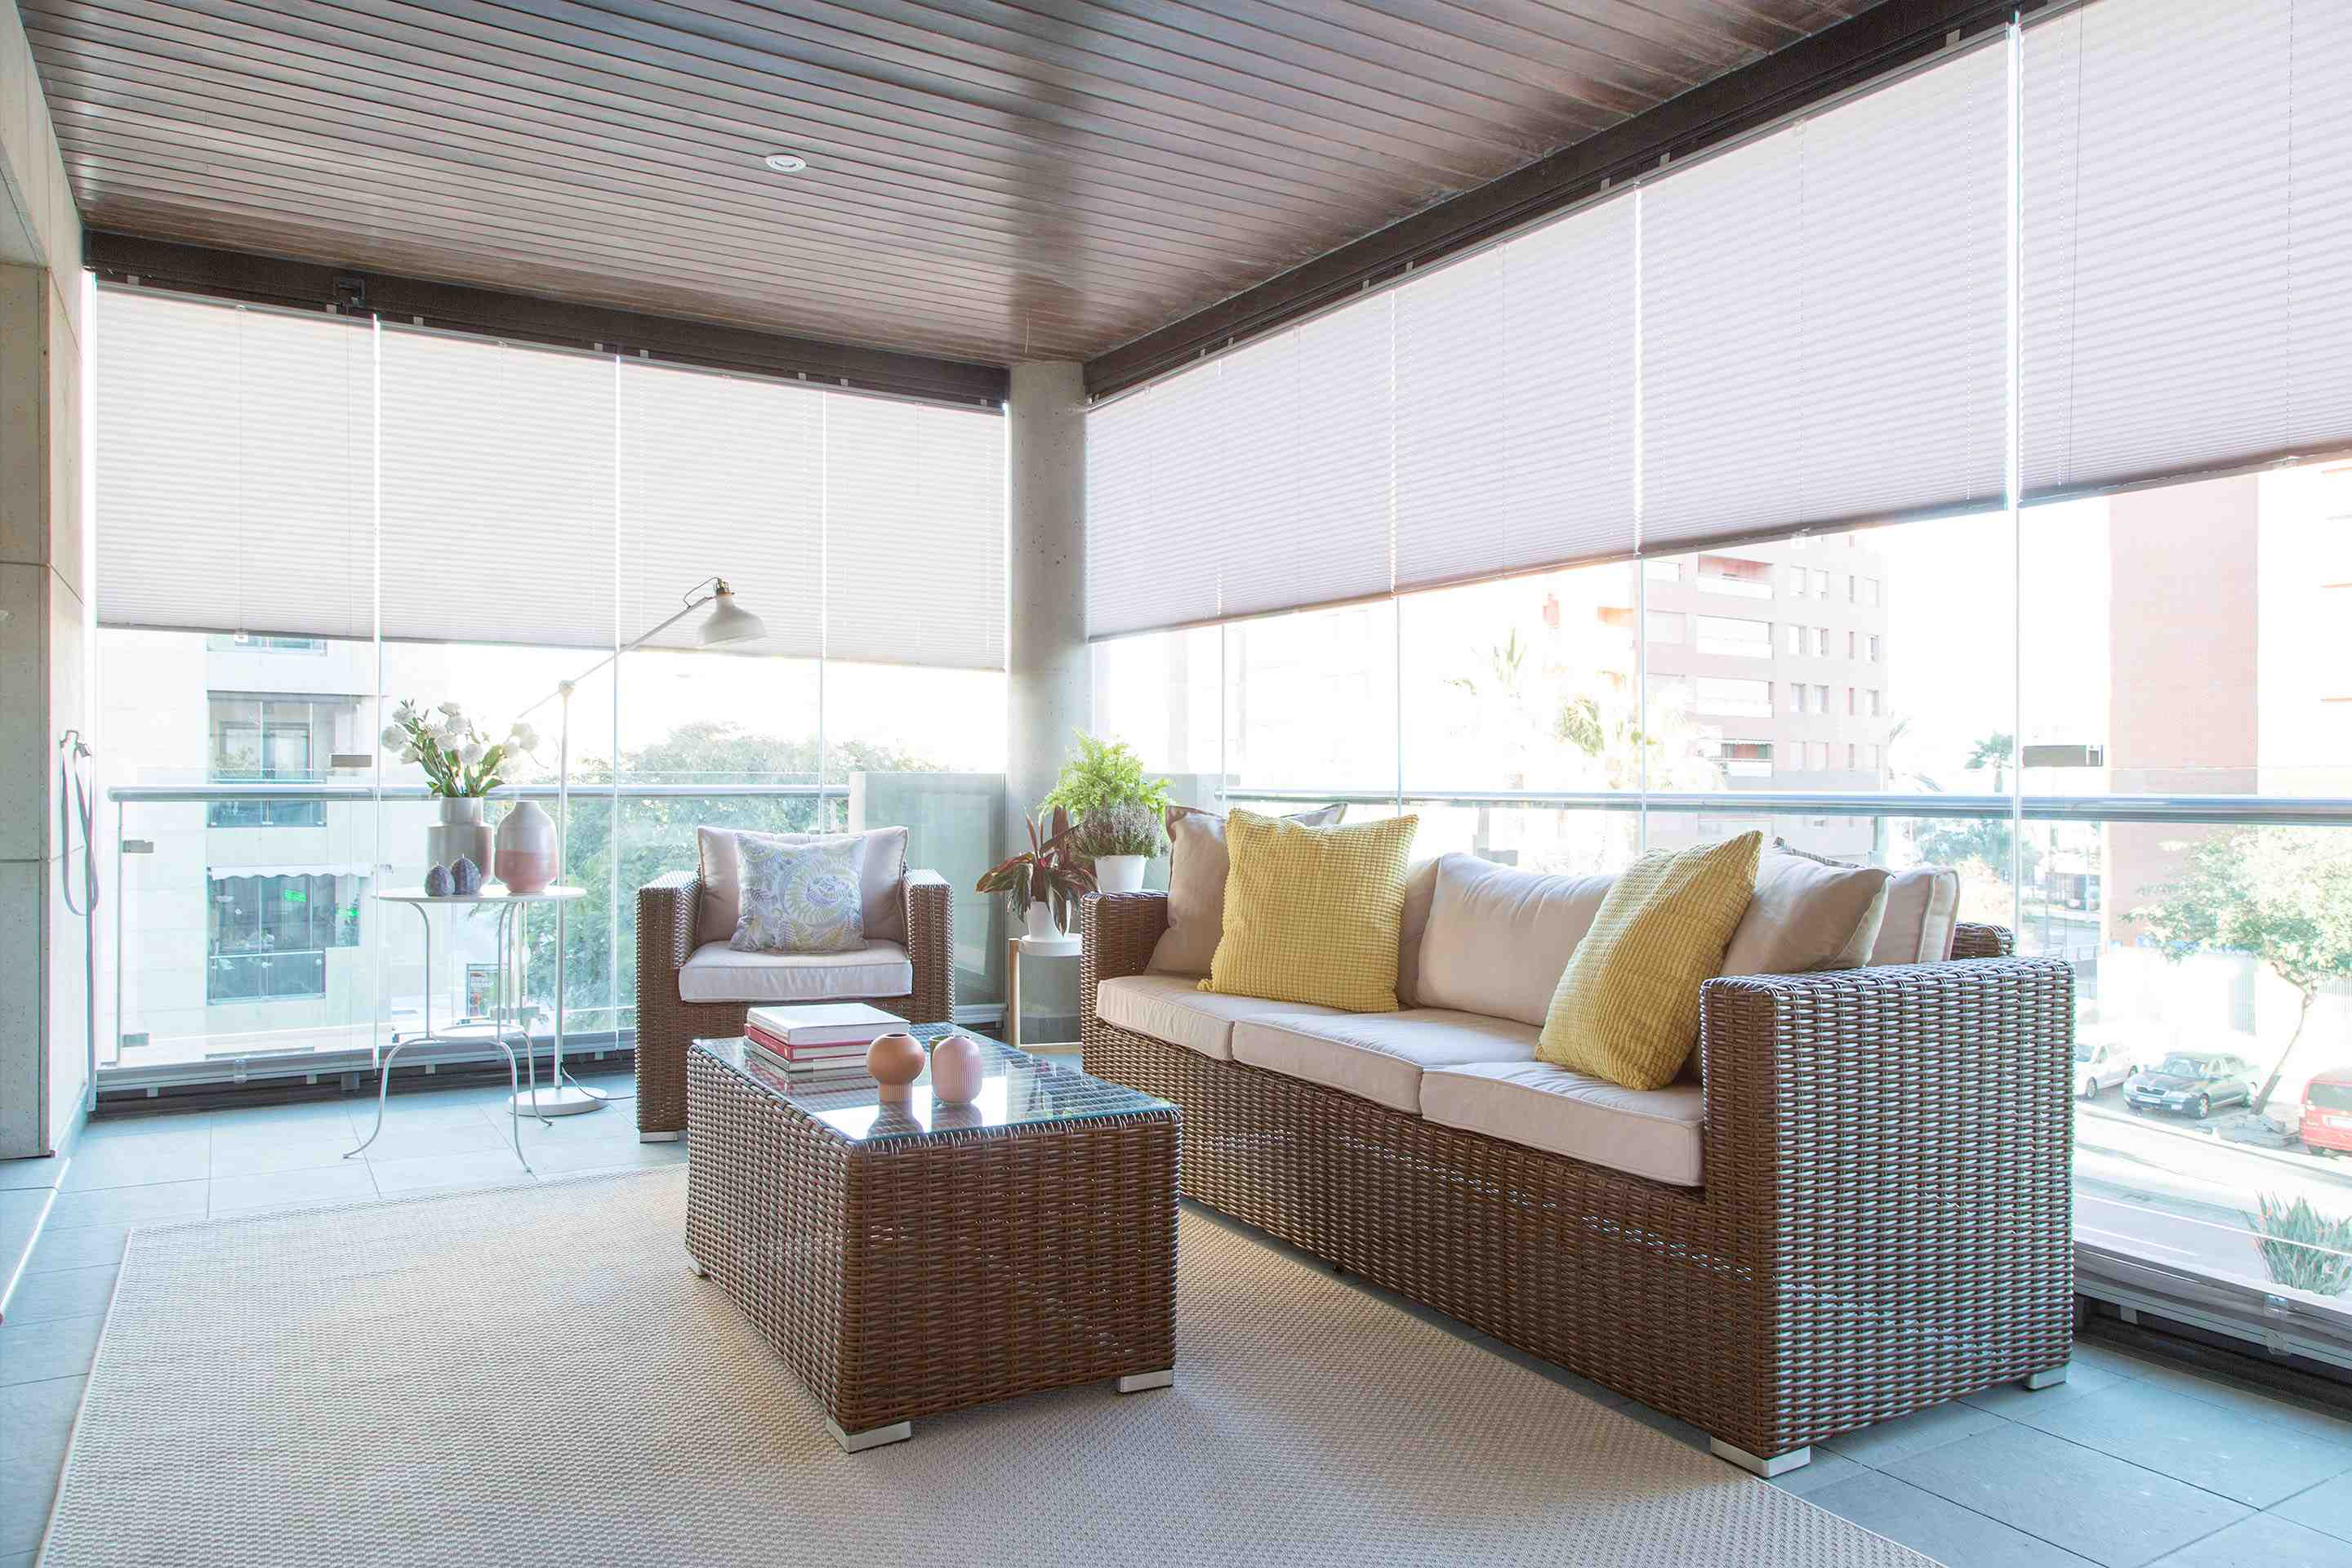 balcony blinds, balcony screens, blinds for sunroom windows, blinds for windows